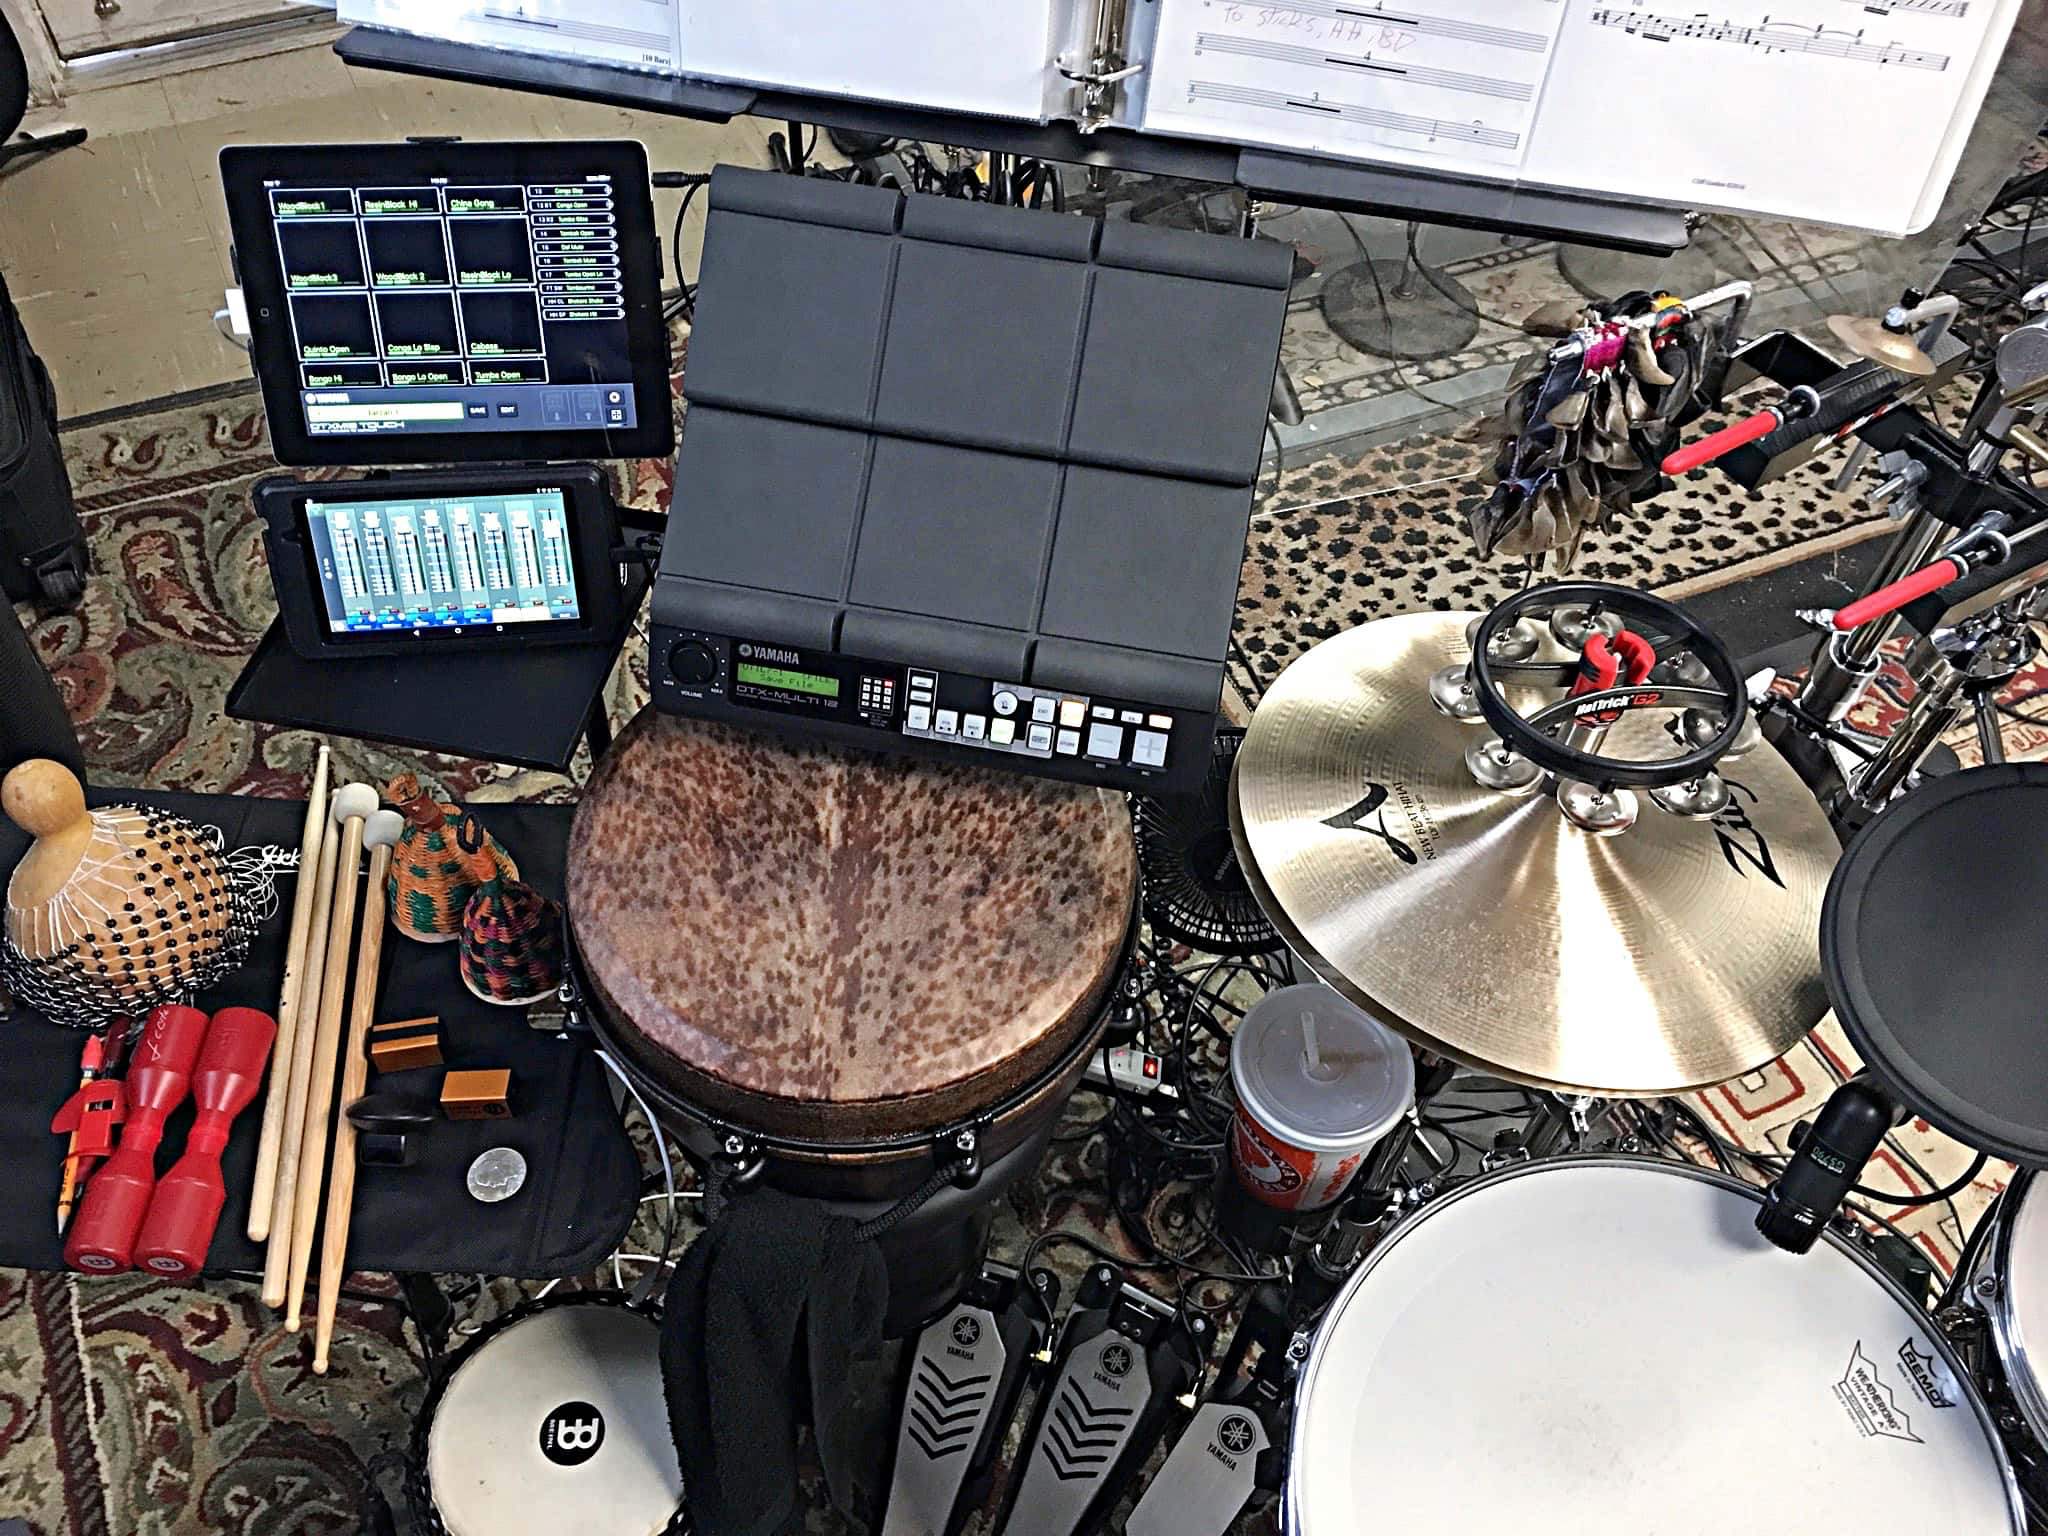 Rob Fedson's setup for Tarzan at the Palace Theatre in Georgetown, Texas (Austin area).